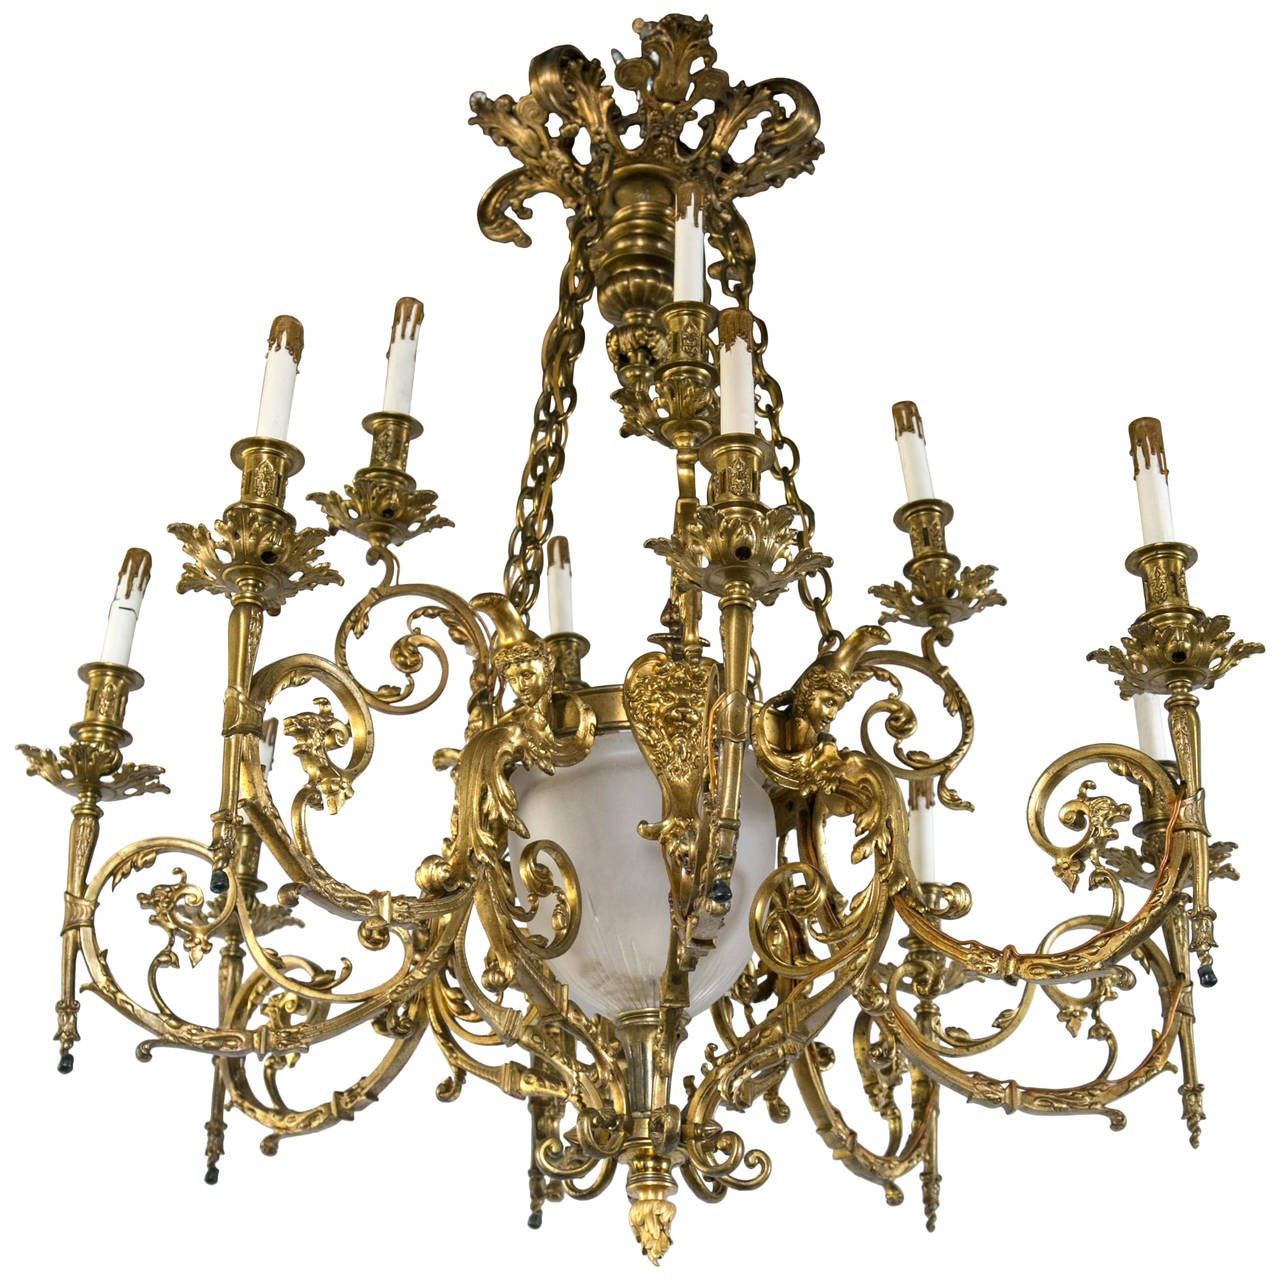 Outstanding Twelve-Light Gilt Bronze Chandelier